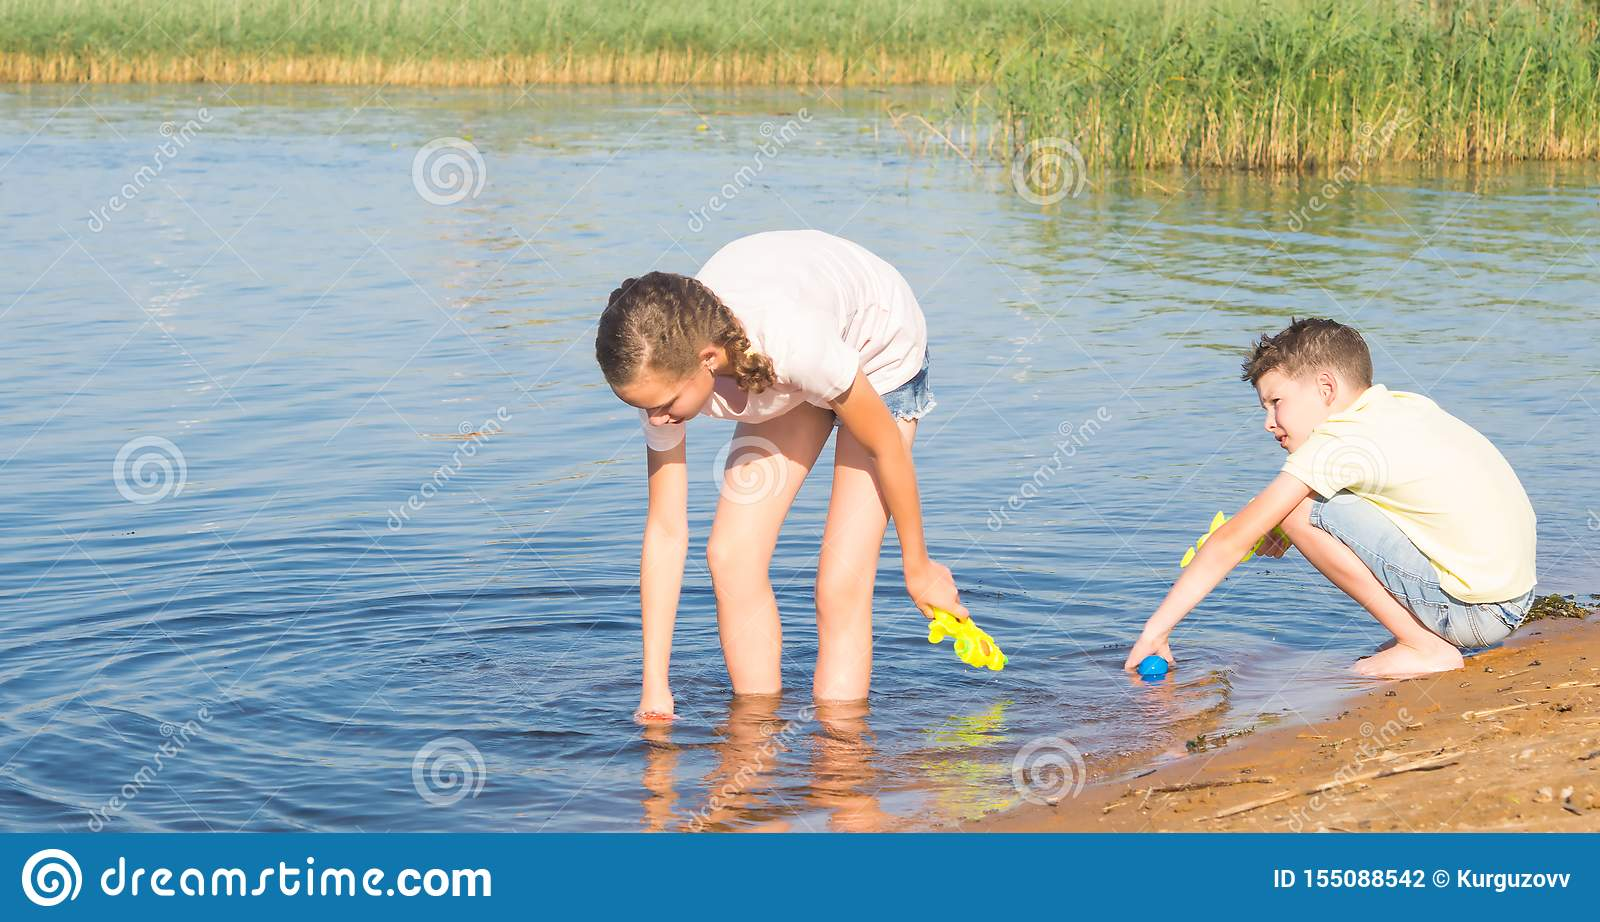 A girl and a boy collect water from a lake in water guns to play in them, against the backdrop of the landscape, close-up